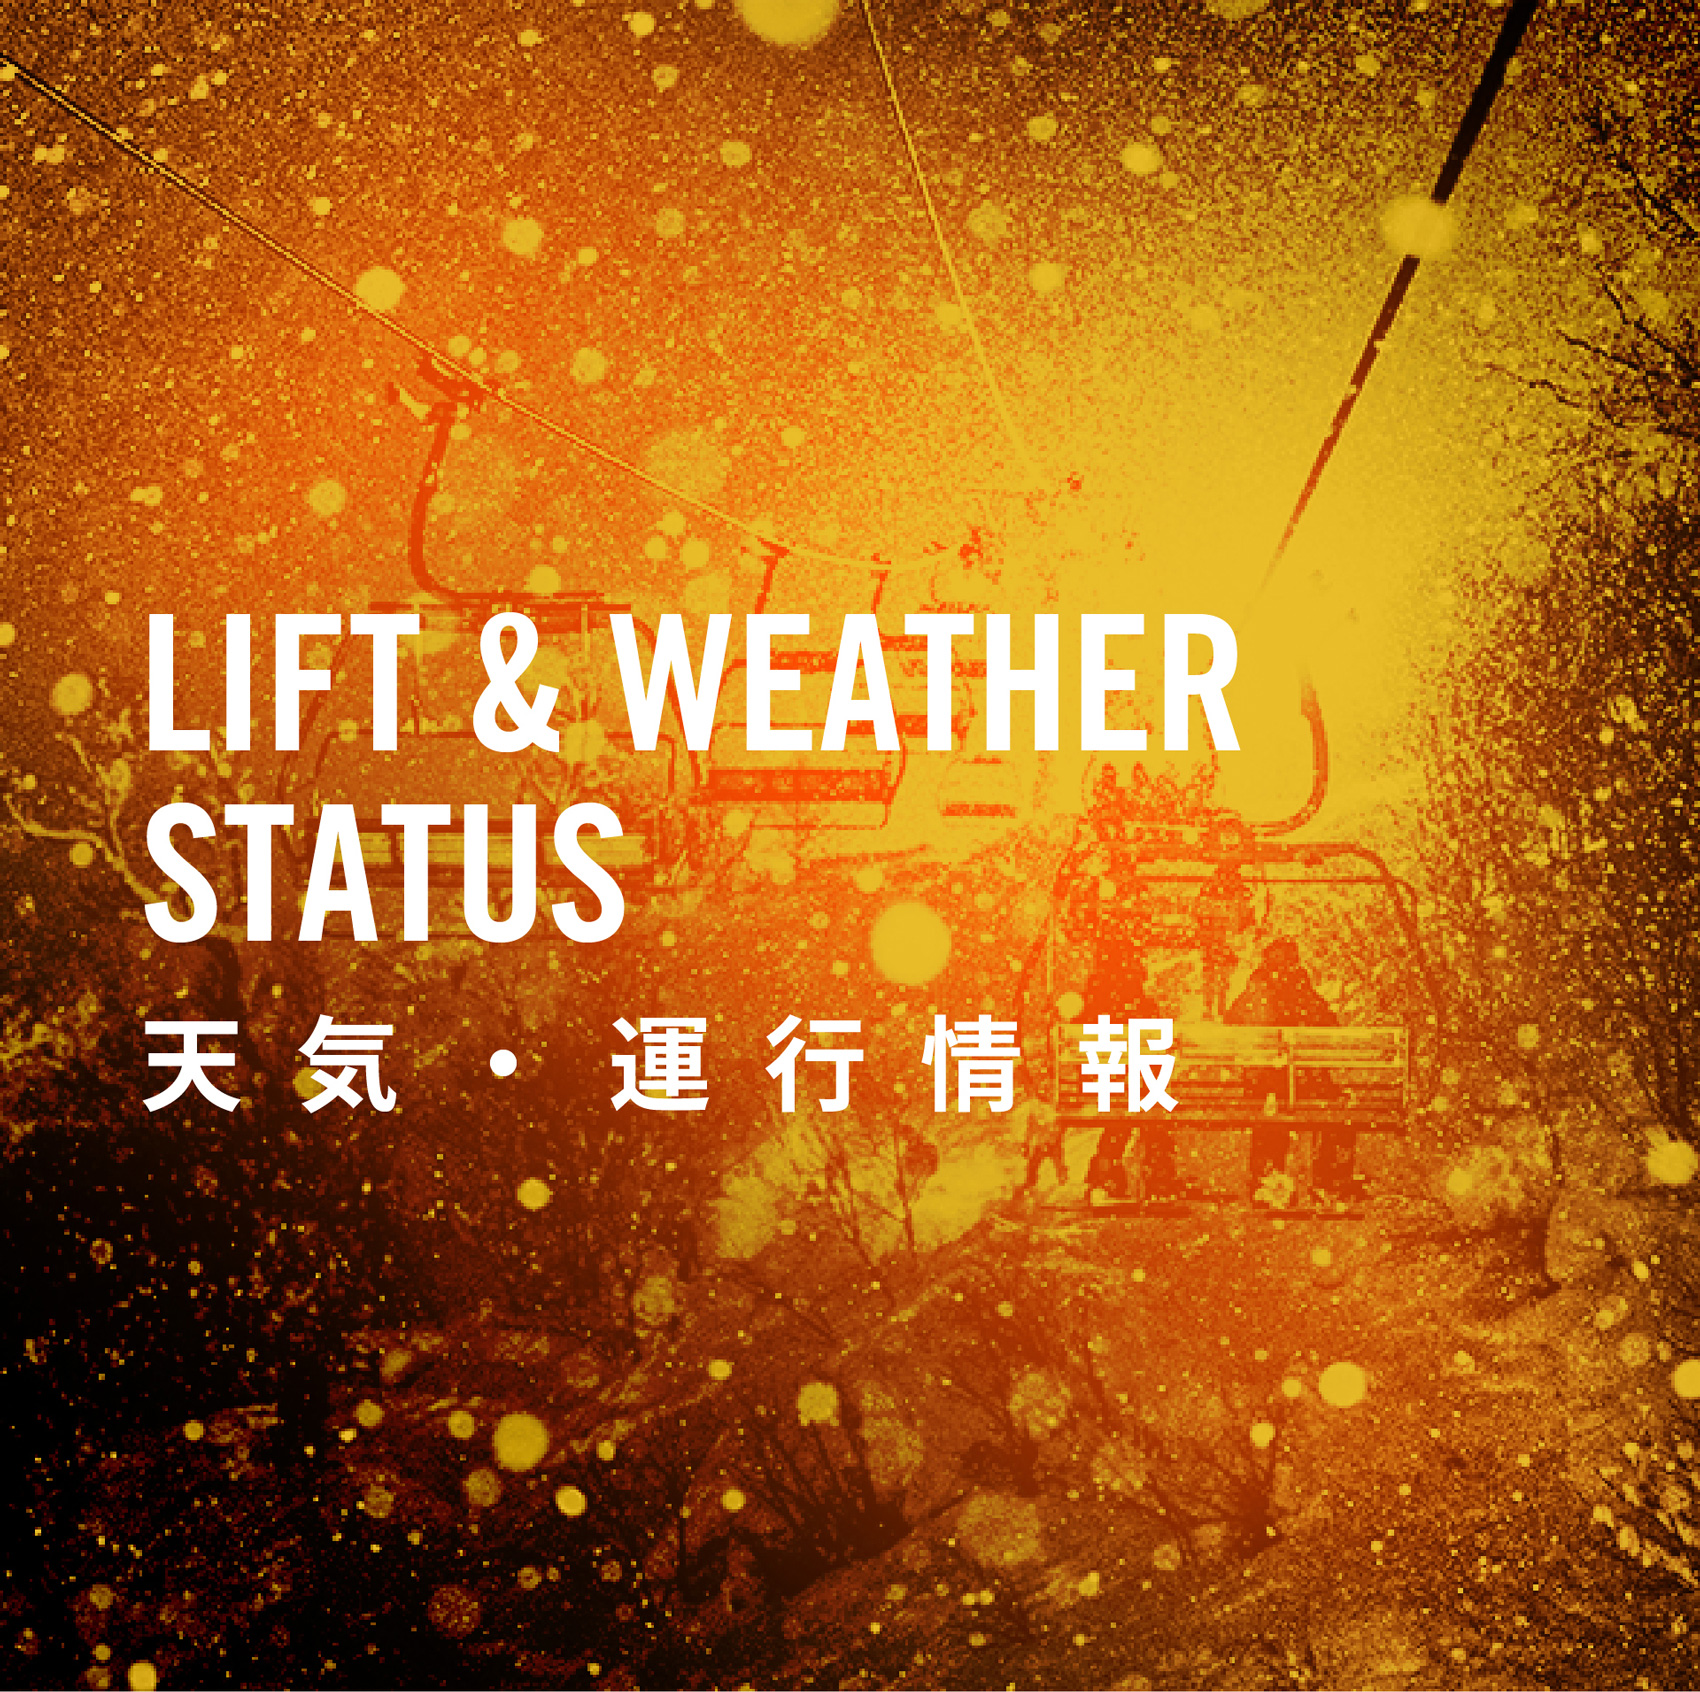 LIFT AND WEATHER STATUS